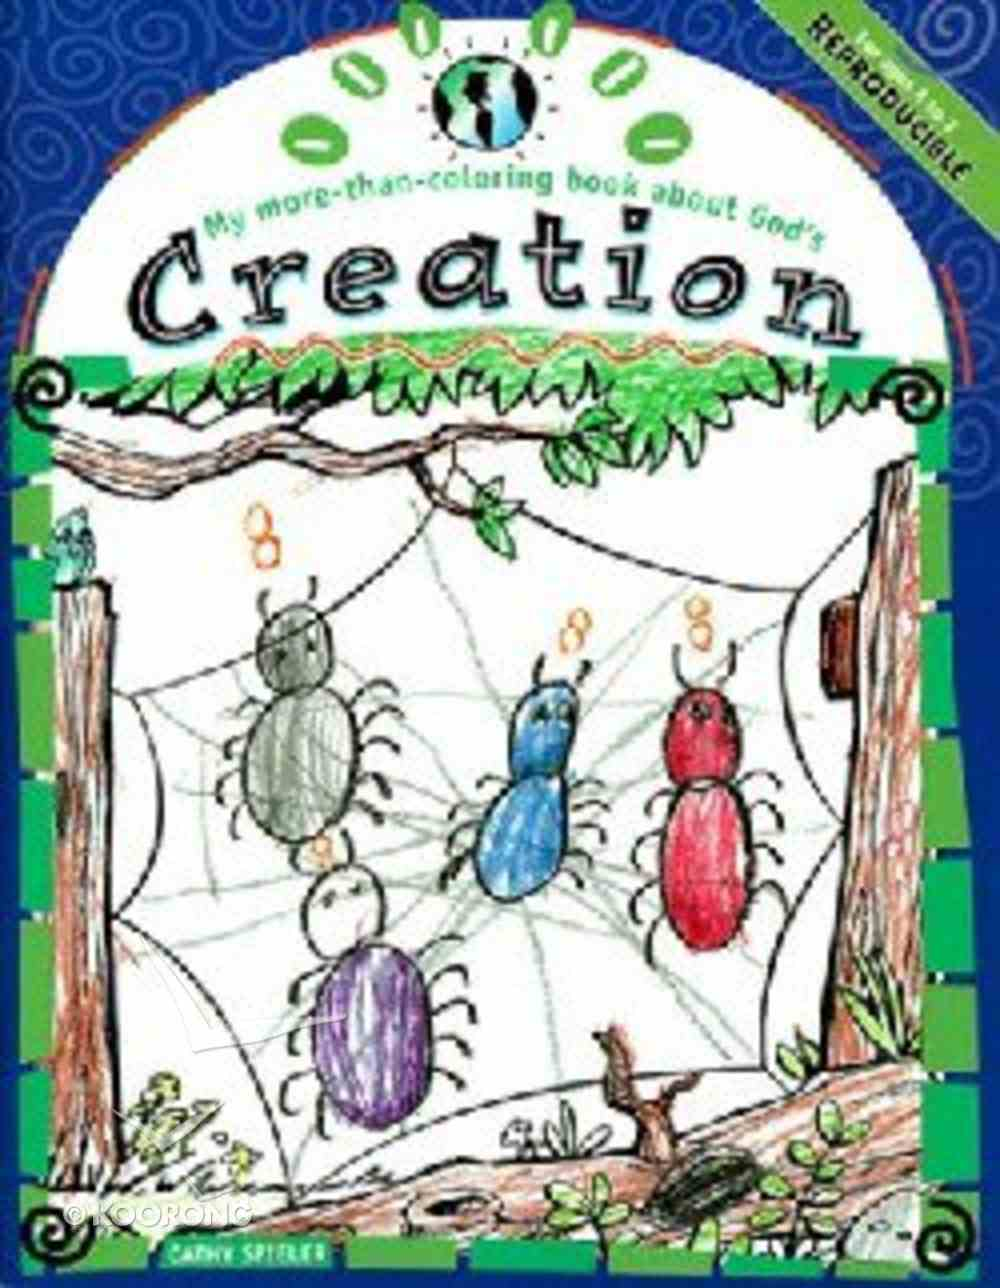 My More-Than-Coloring Book About God's Creation (My More-than-colouring Book Series) Paperback